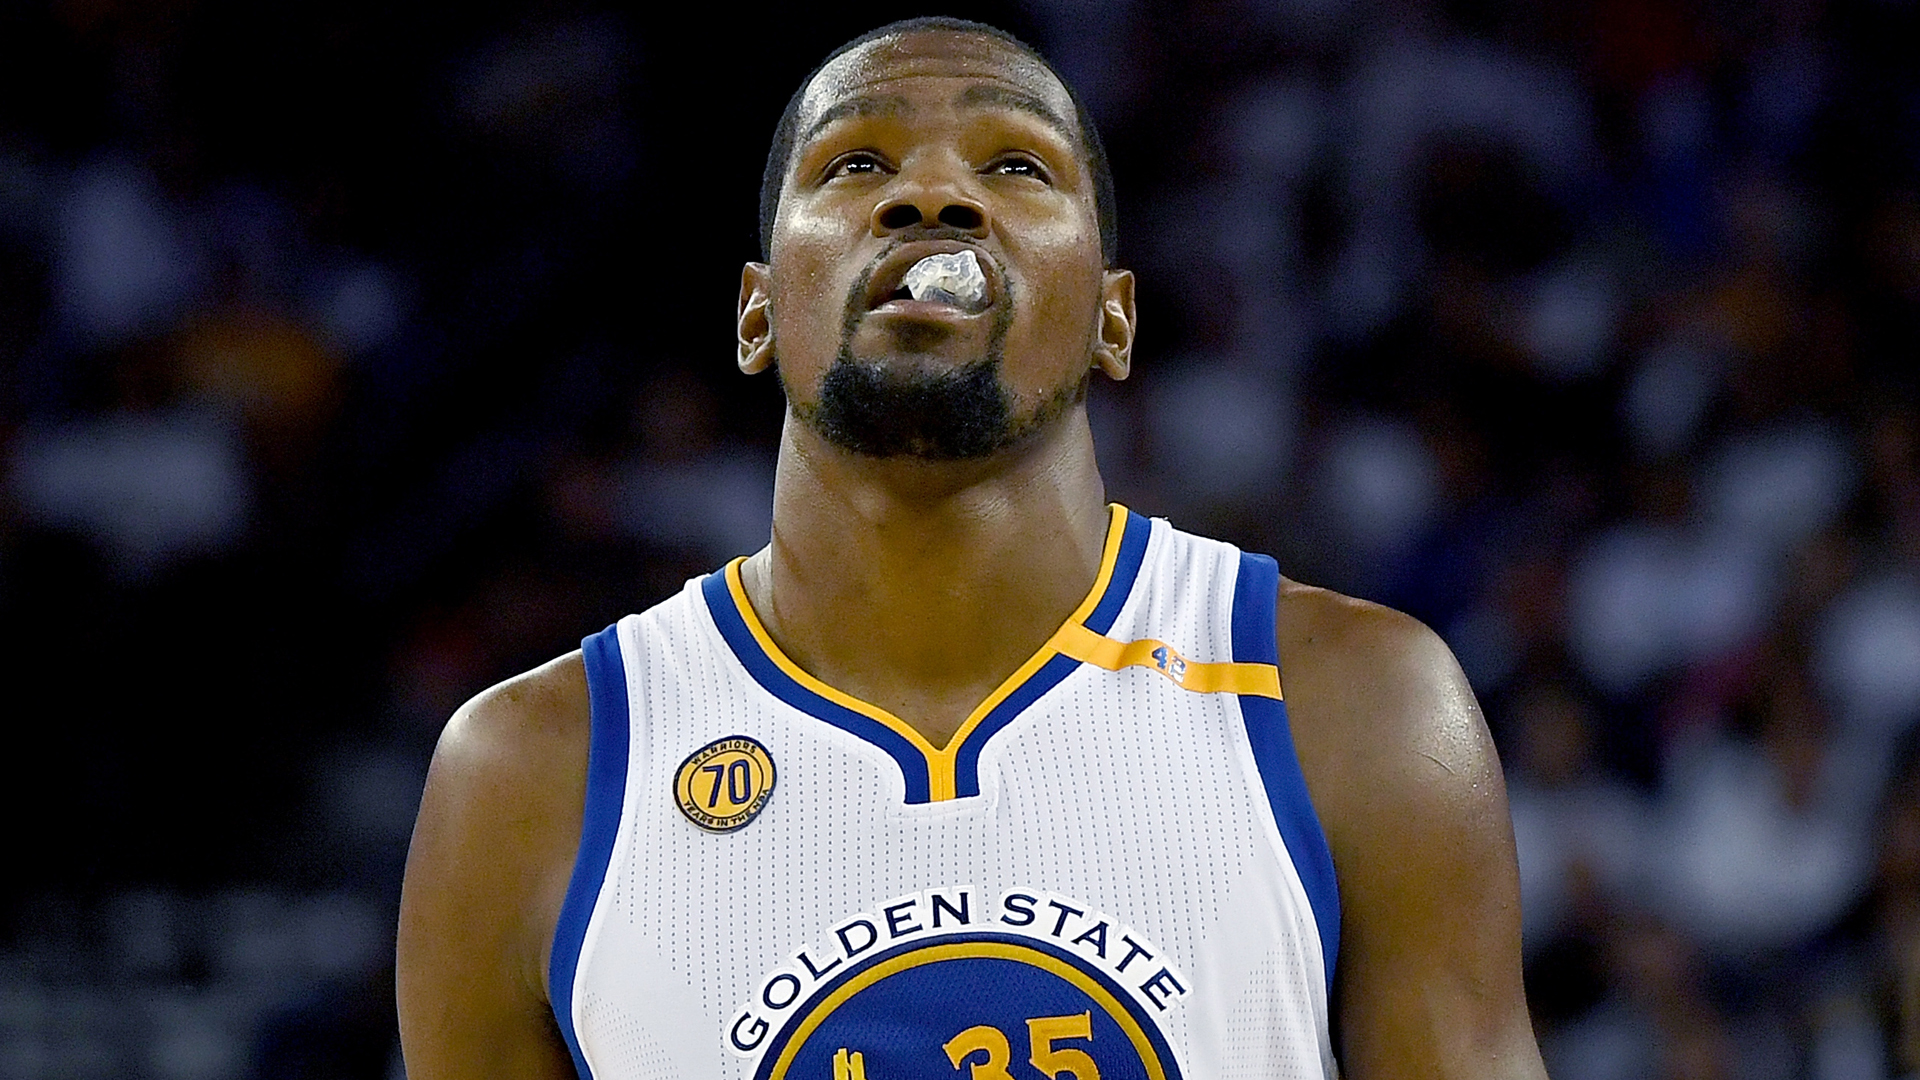 NBA playoffs 2017: Kevin Durant 'wants to play' Game 3 against Trail Blazers | NBA | Sporting News